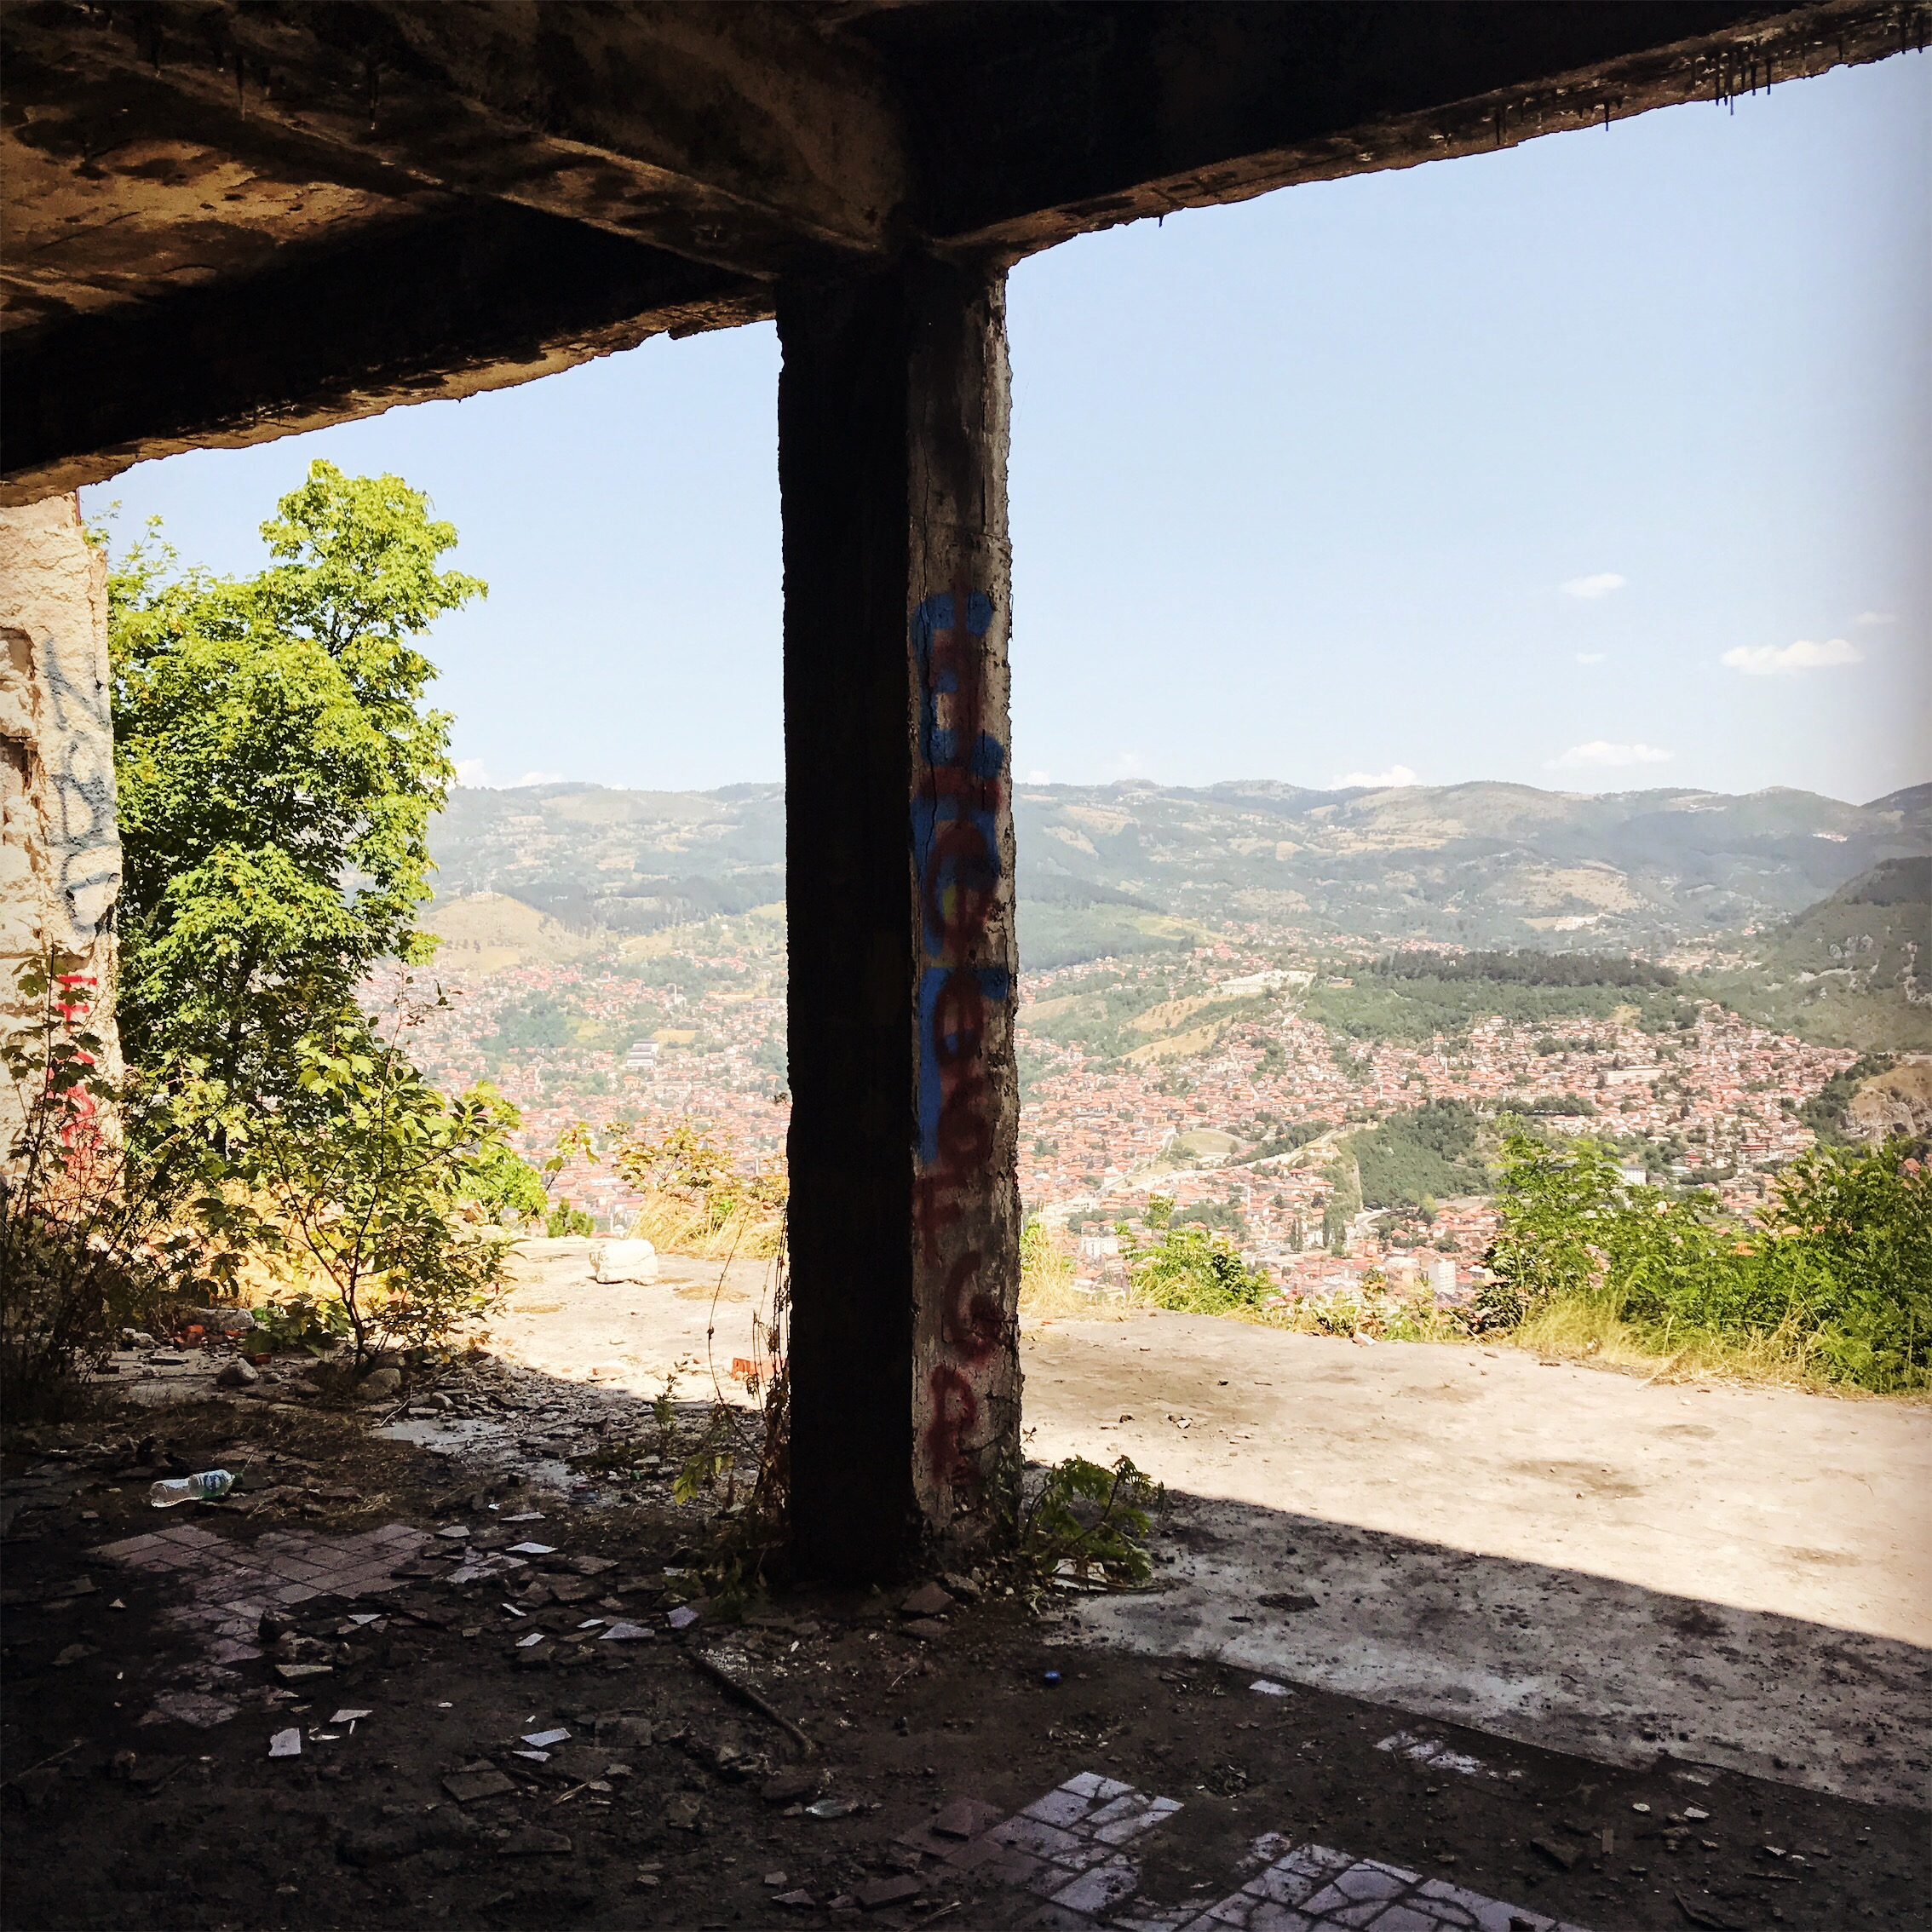 This bombed out restaurant on Trebević Mountain offered diners stunning views of Sarajevo, but our tour guide said what he really misses is the live music. The thought of laughter and folk music and good food contrasted with the rubble here really haunted me.